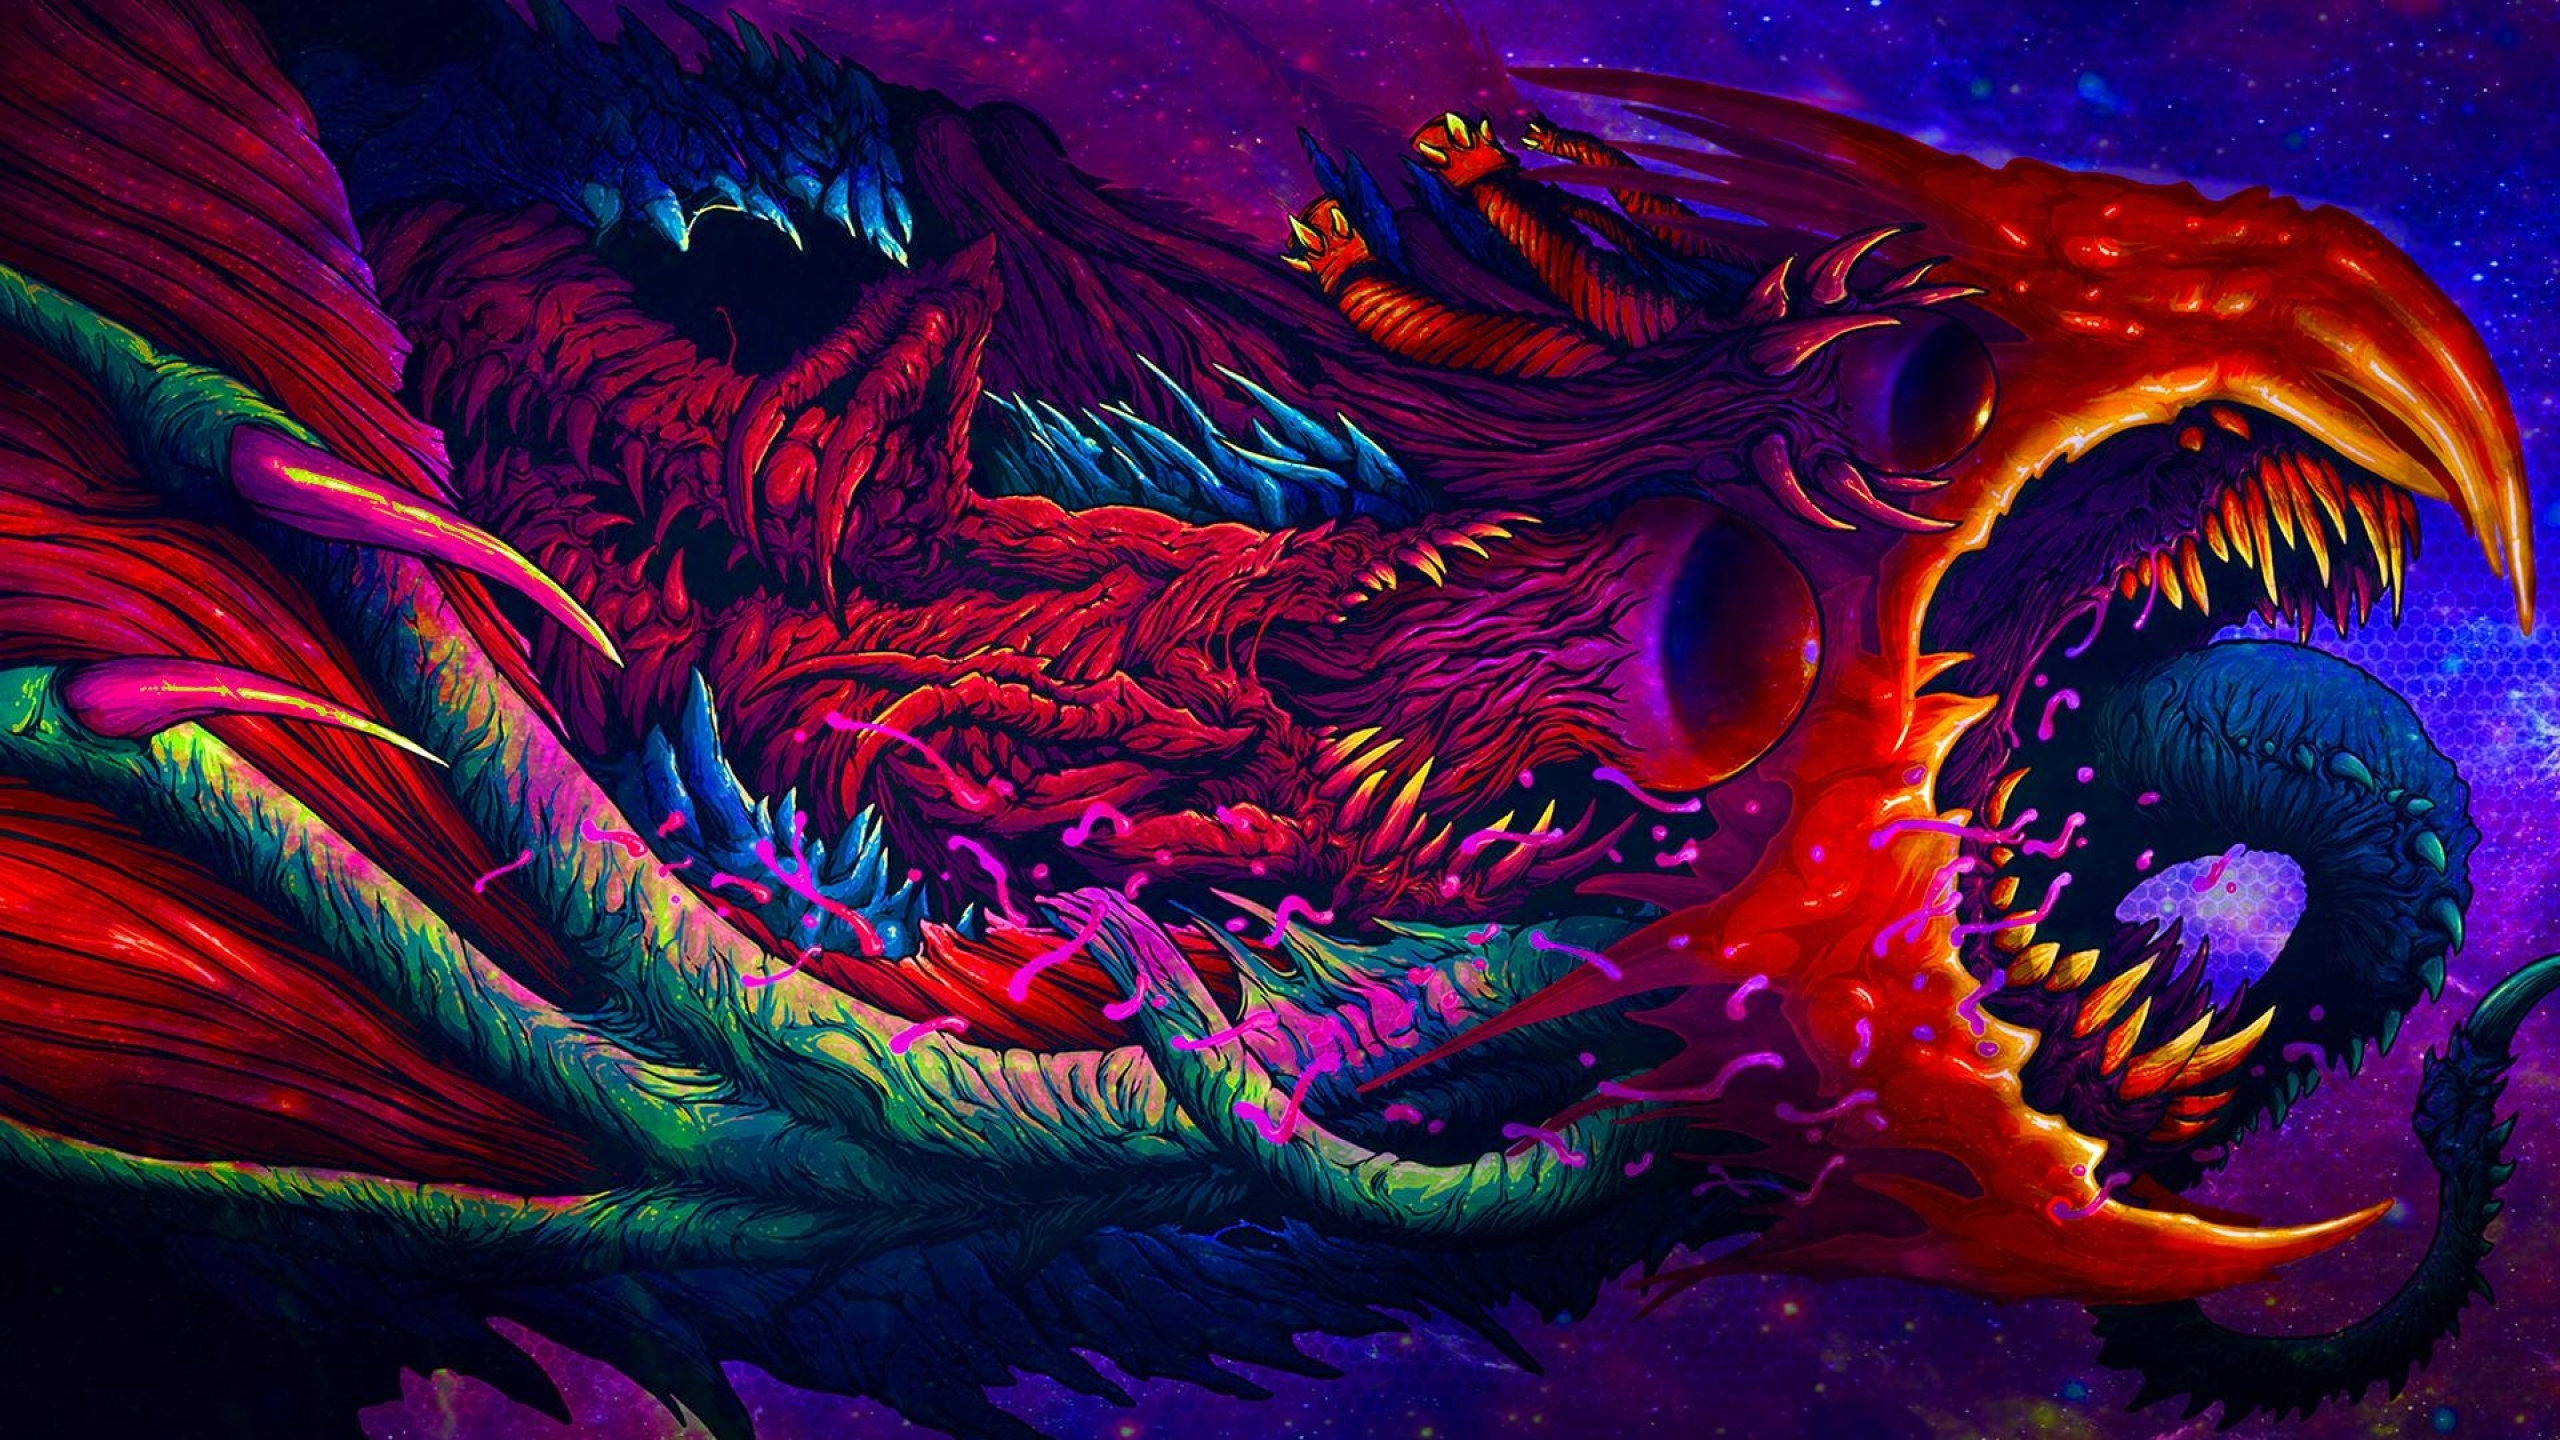 2560x1440 Hyper Beast Csgo Art Cool 1440p Resolution Wallpaper Hd Games 4k Wallpapers Images Photos And Background